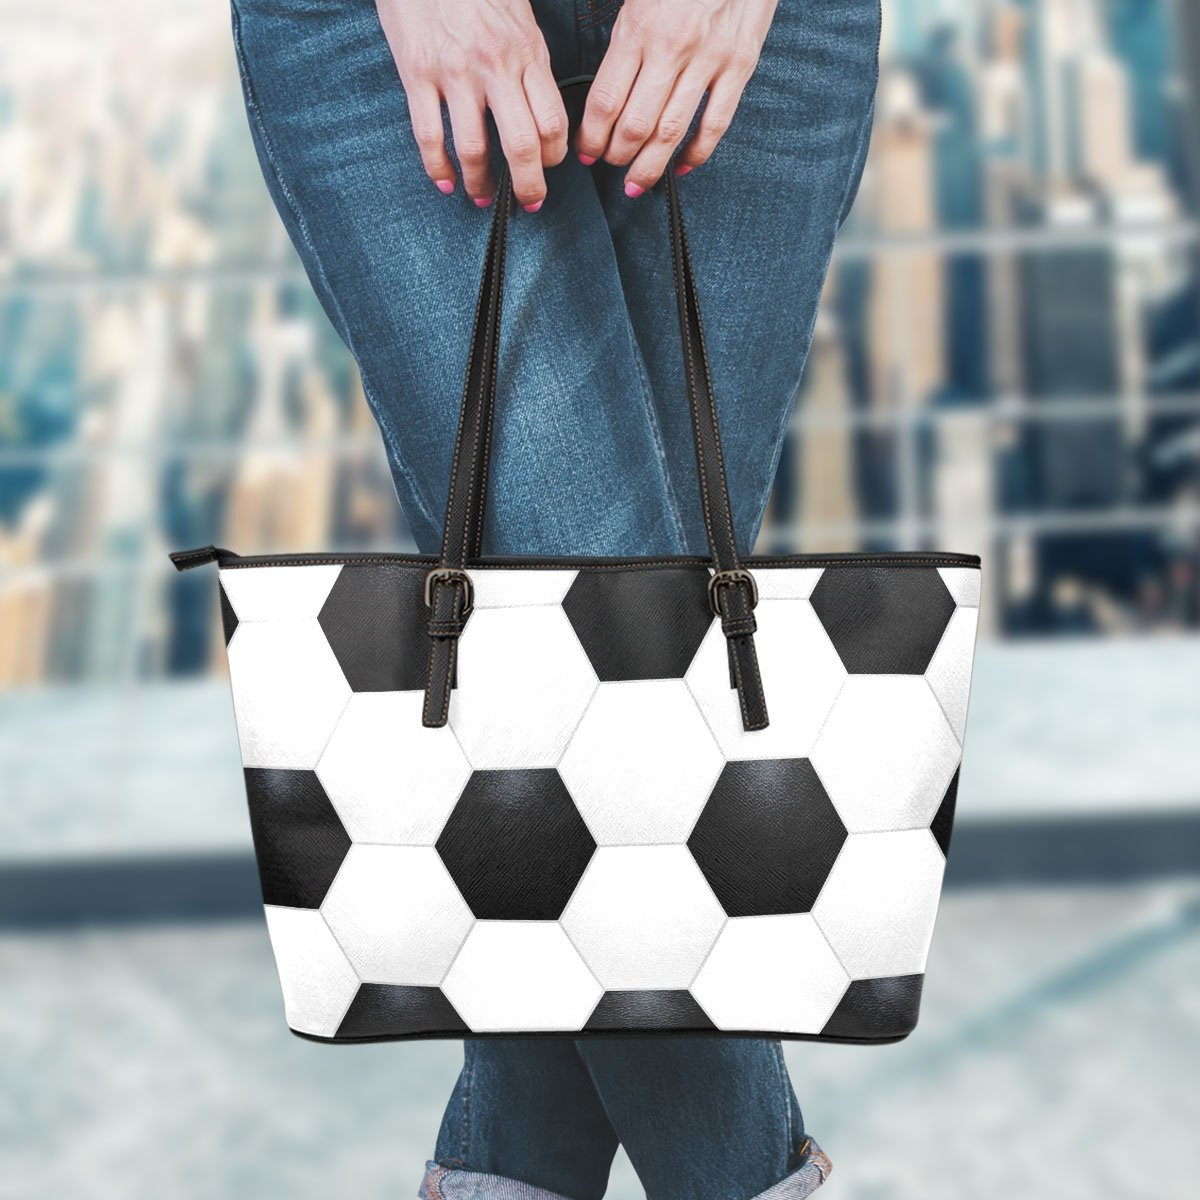 Soccer Leather Handbag